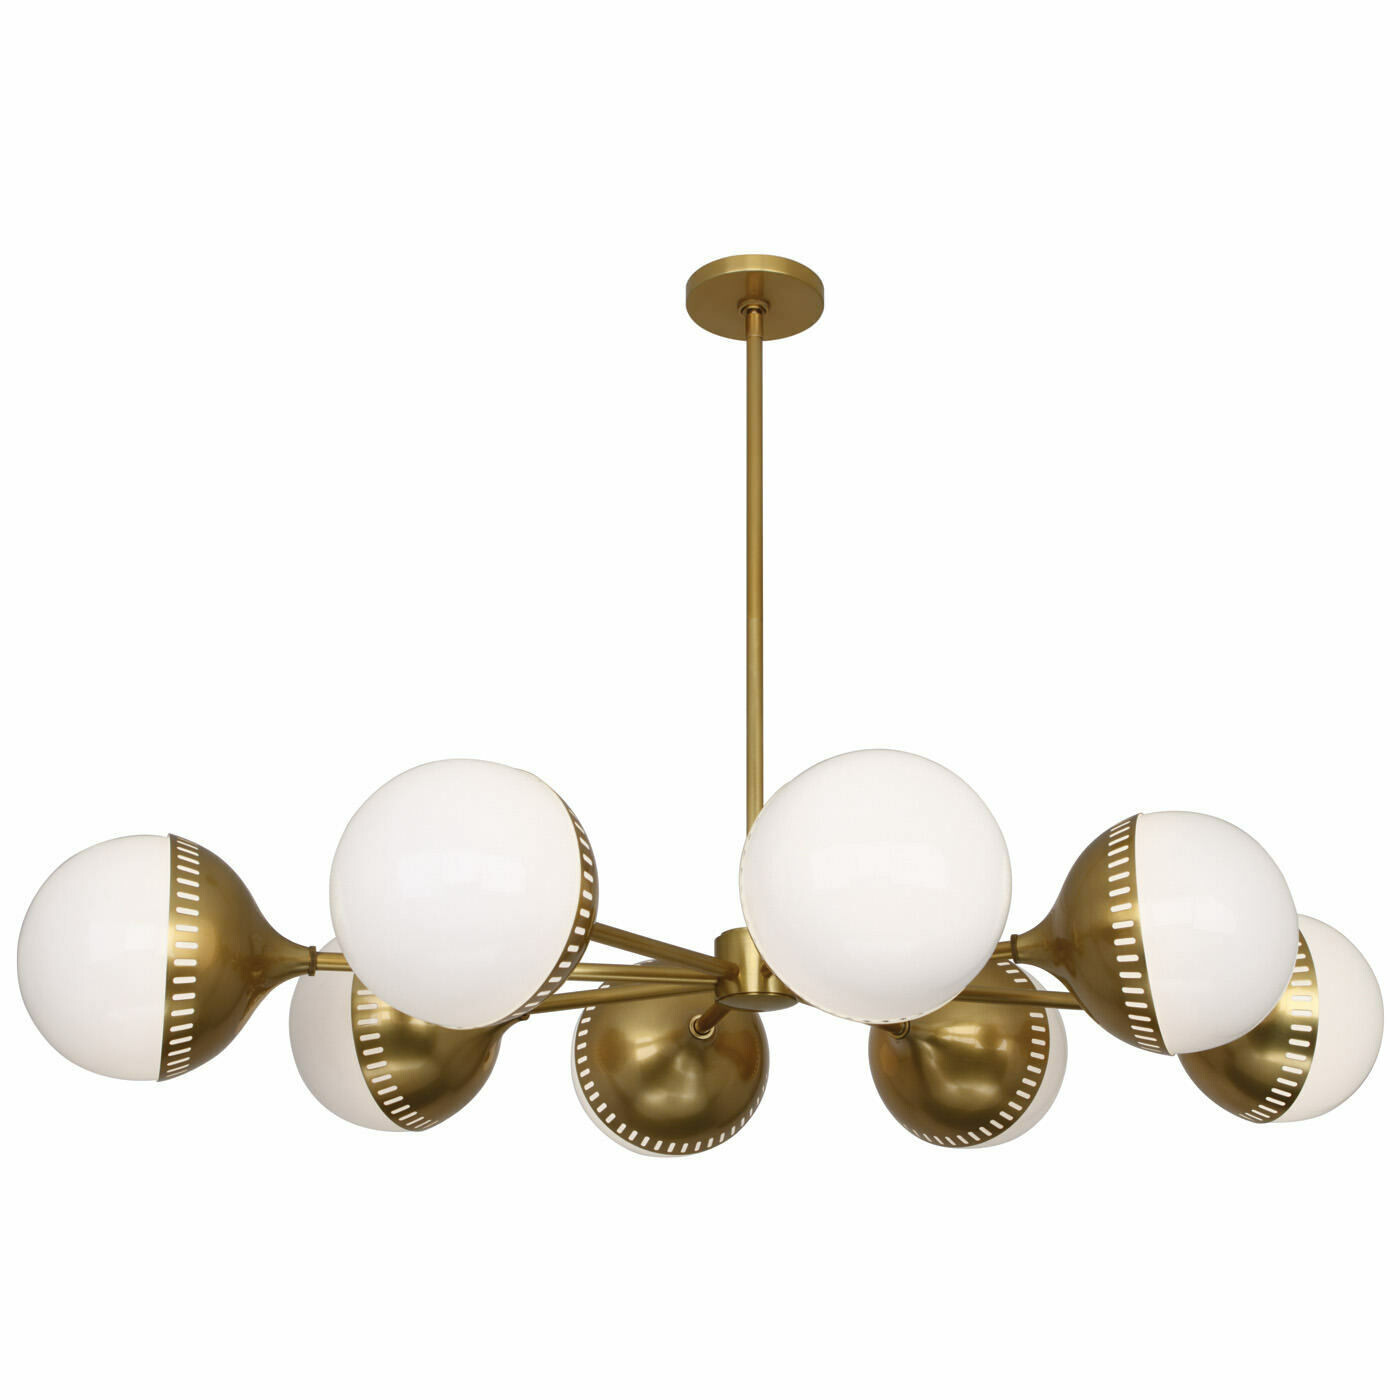 Rio Oval Spoke Chandelier